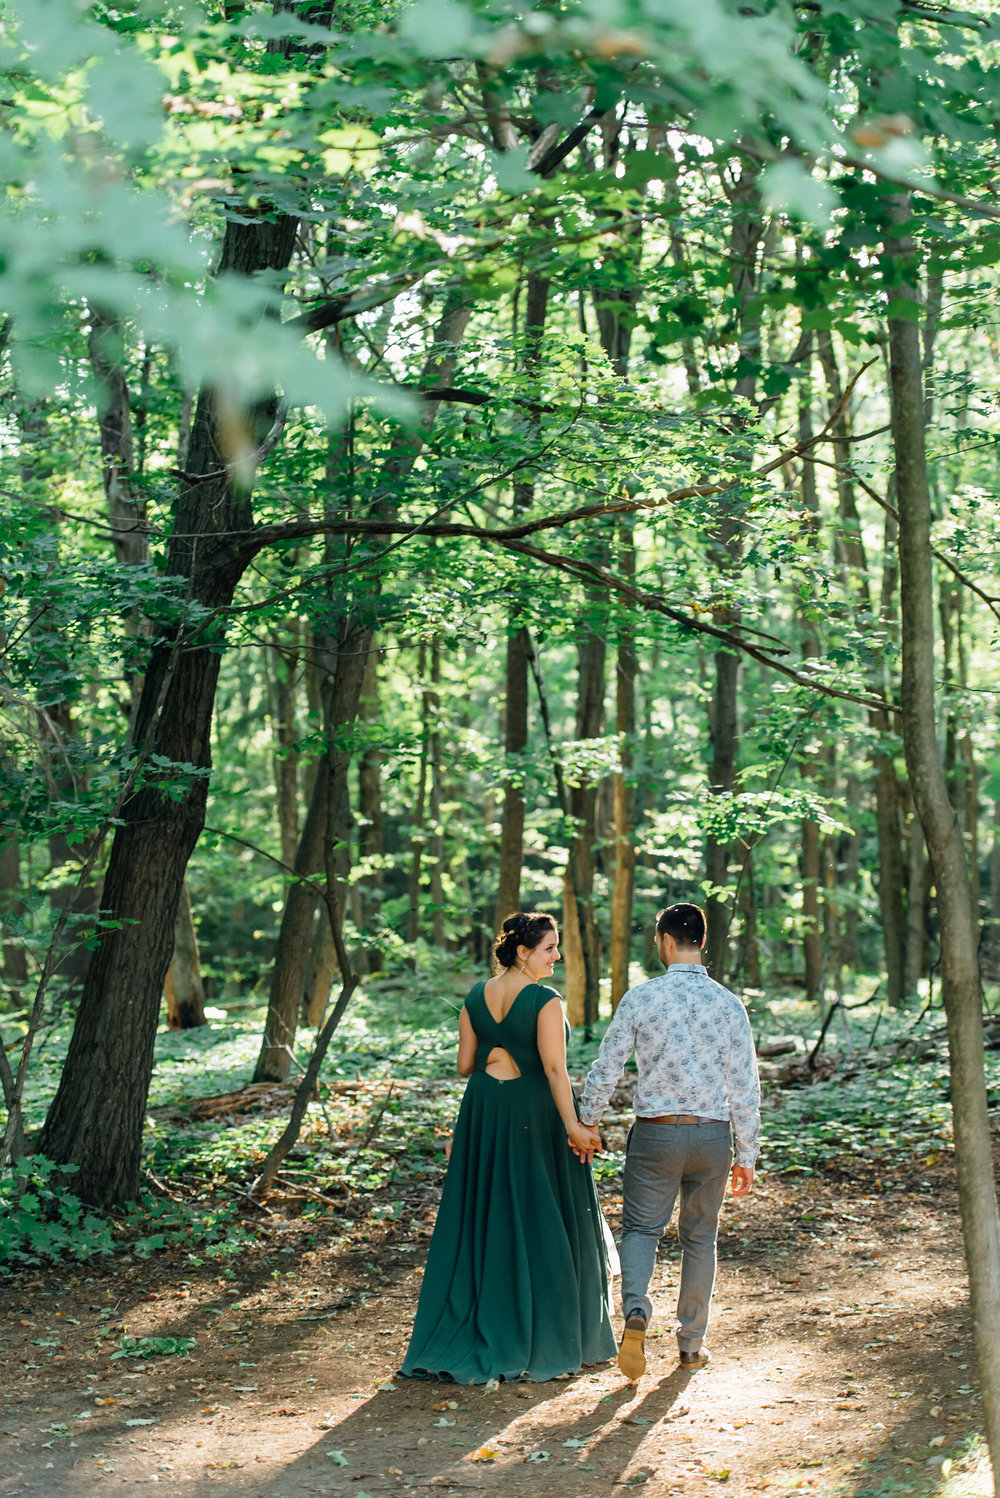 Jenna + Sebastien Indie Elopement in Canada - Ali and Batoul Photography-118.jpg